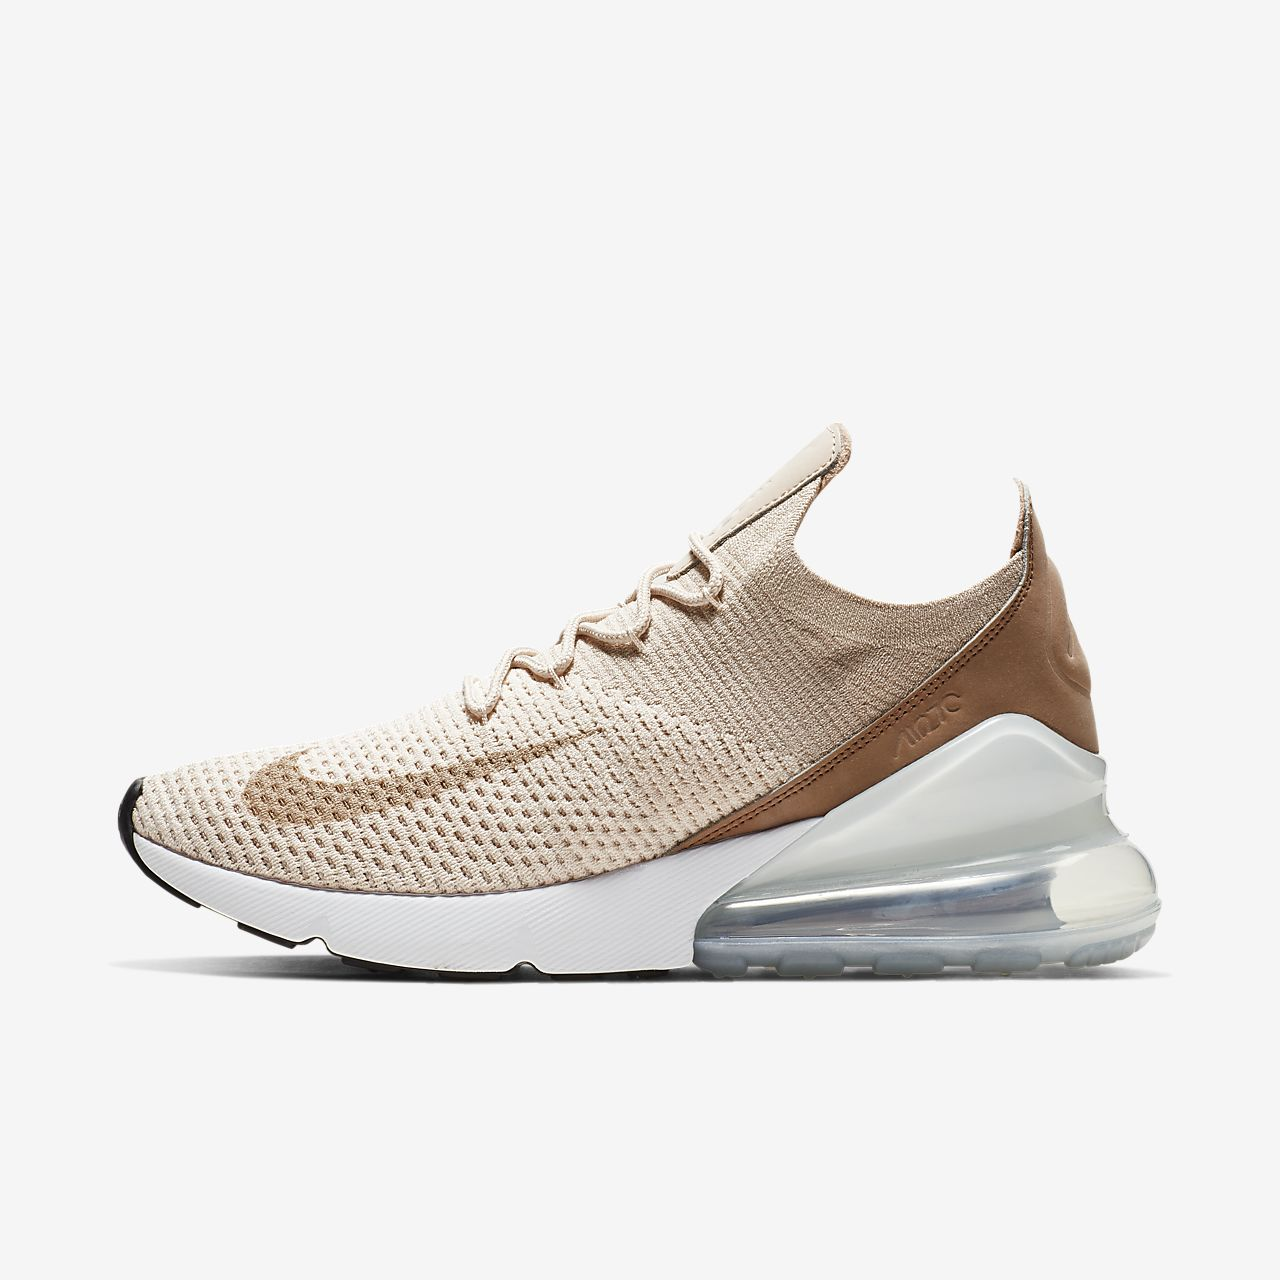 Buy Cheap Nike Air Max 270 Running Shoes for Sale 2018